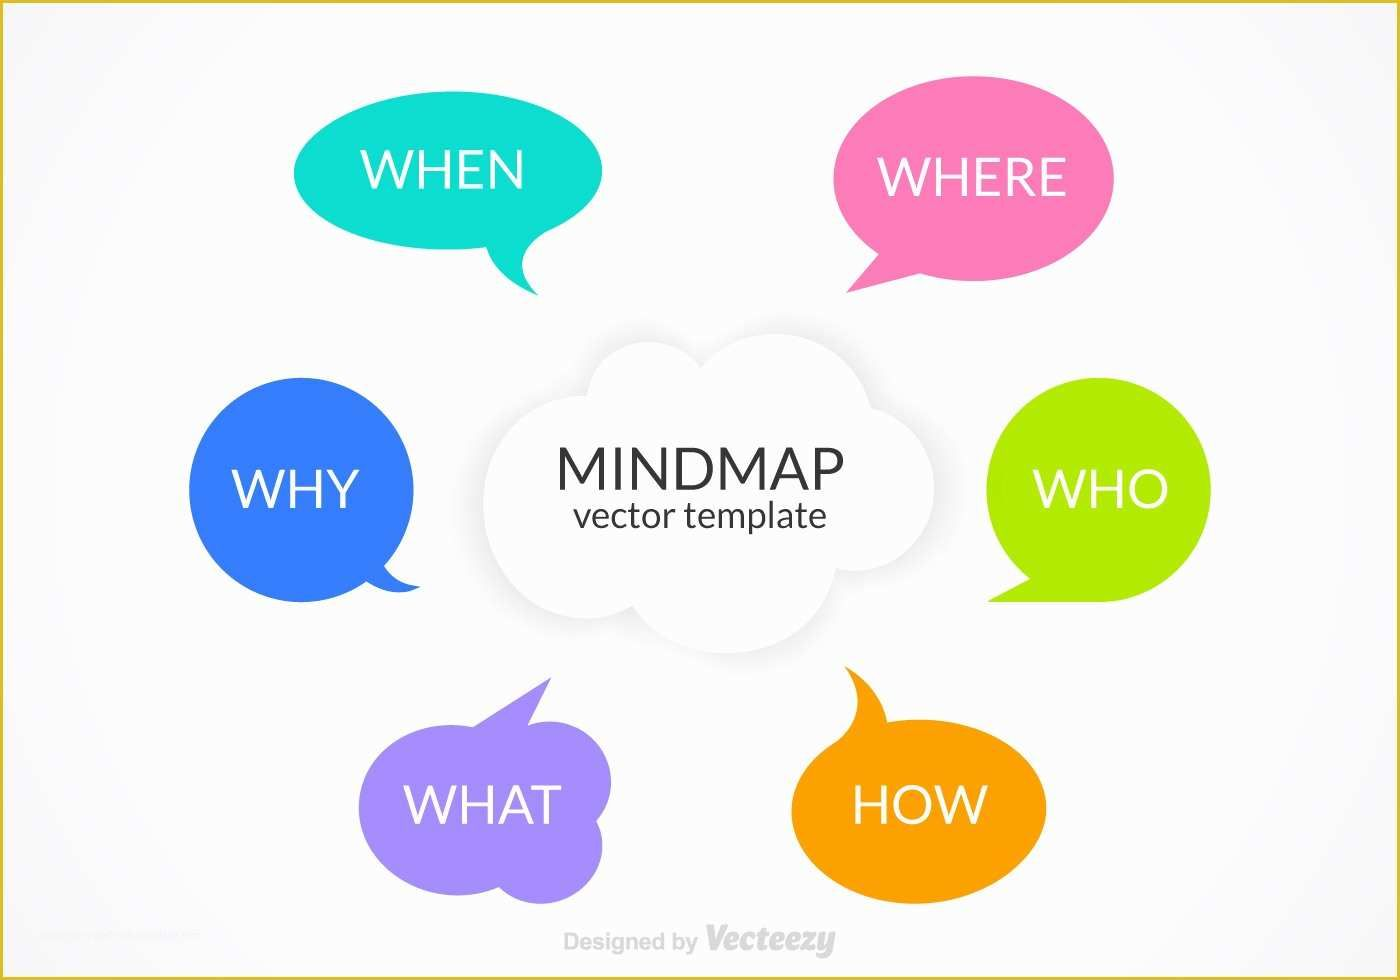 47 Mind Map Template Free Download Heritagechristiancollege In 2021 Mind Map Template Templates Free Download Mind Map Mind map template free download